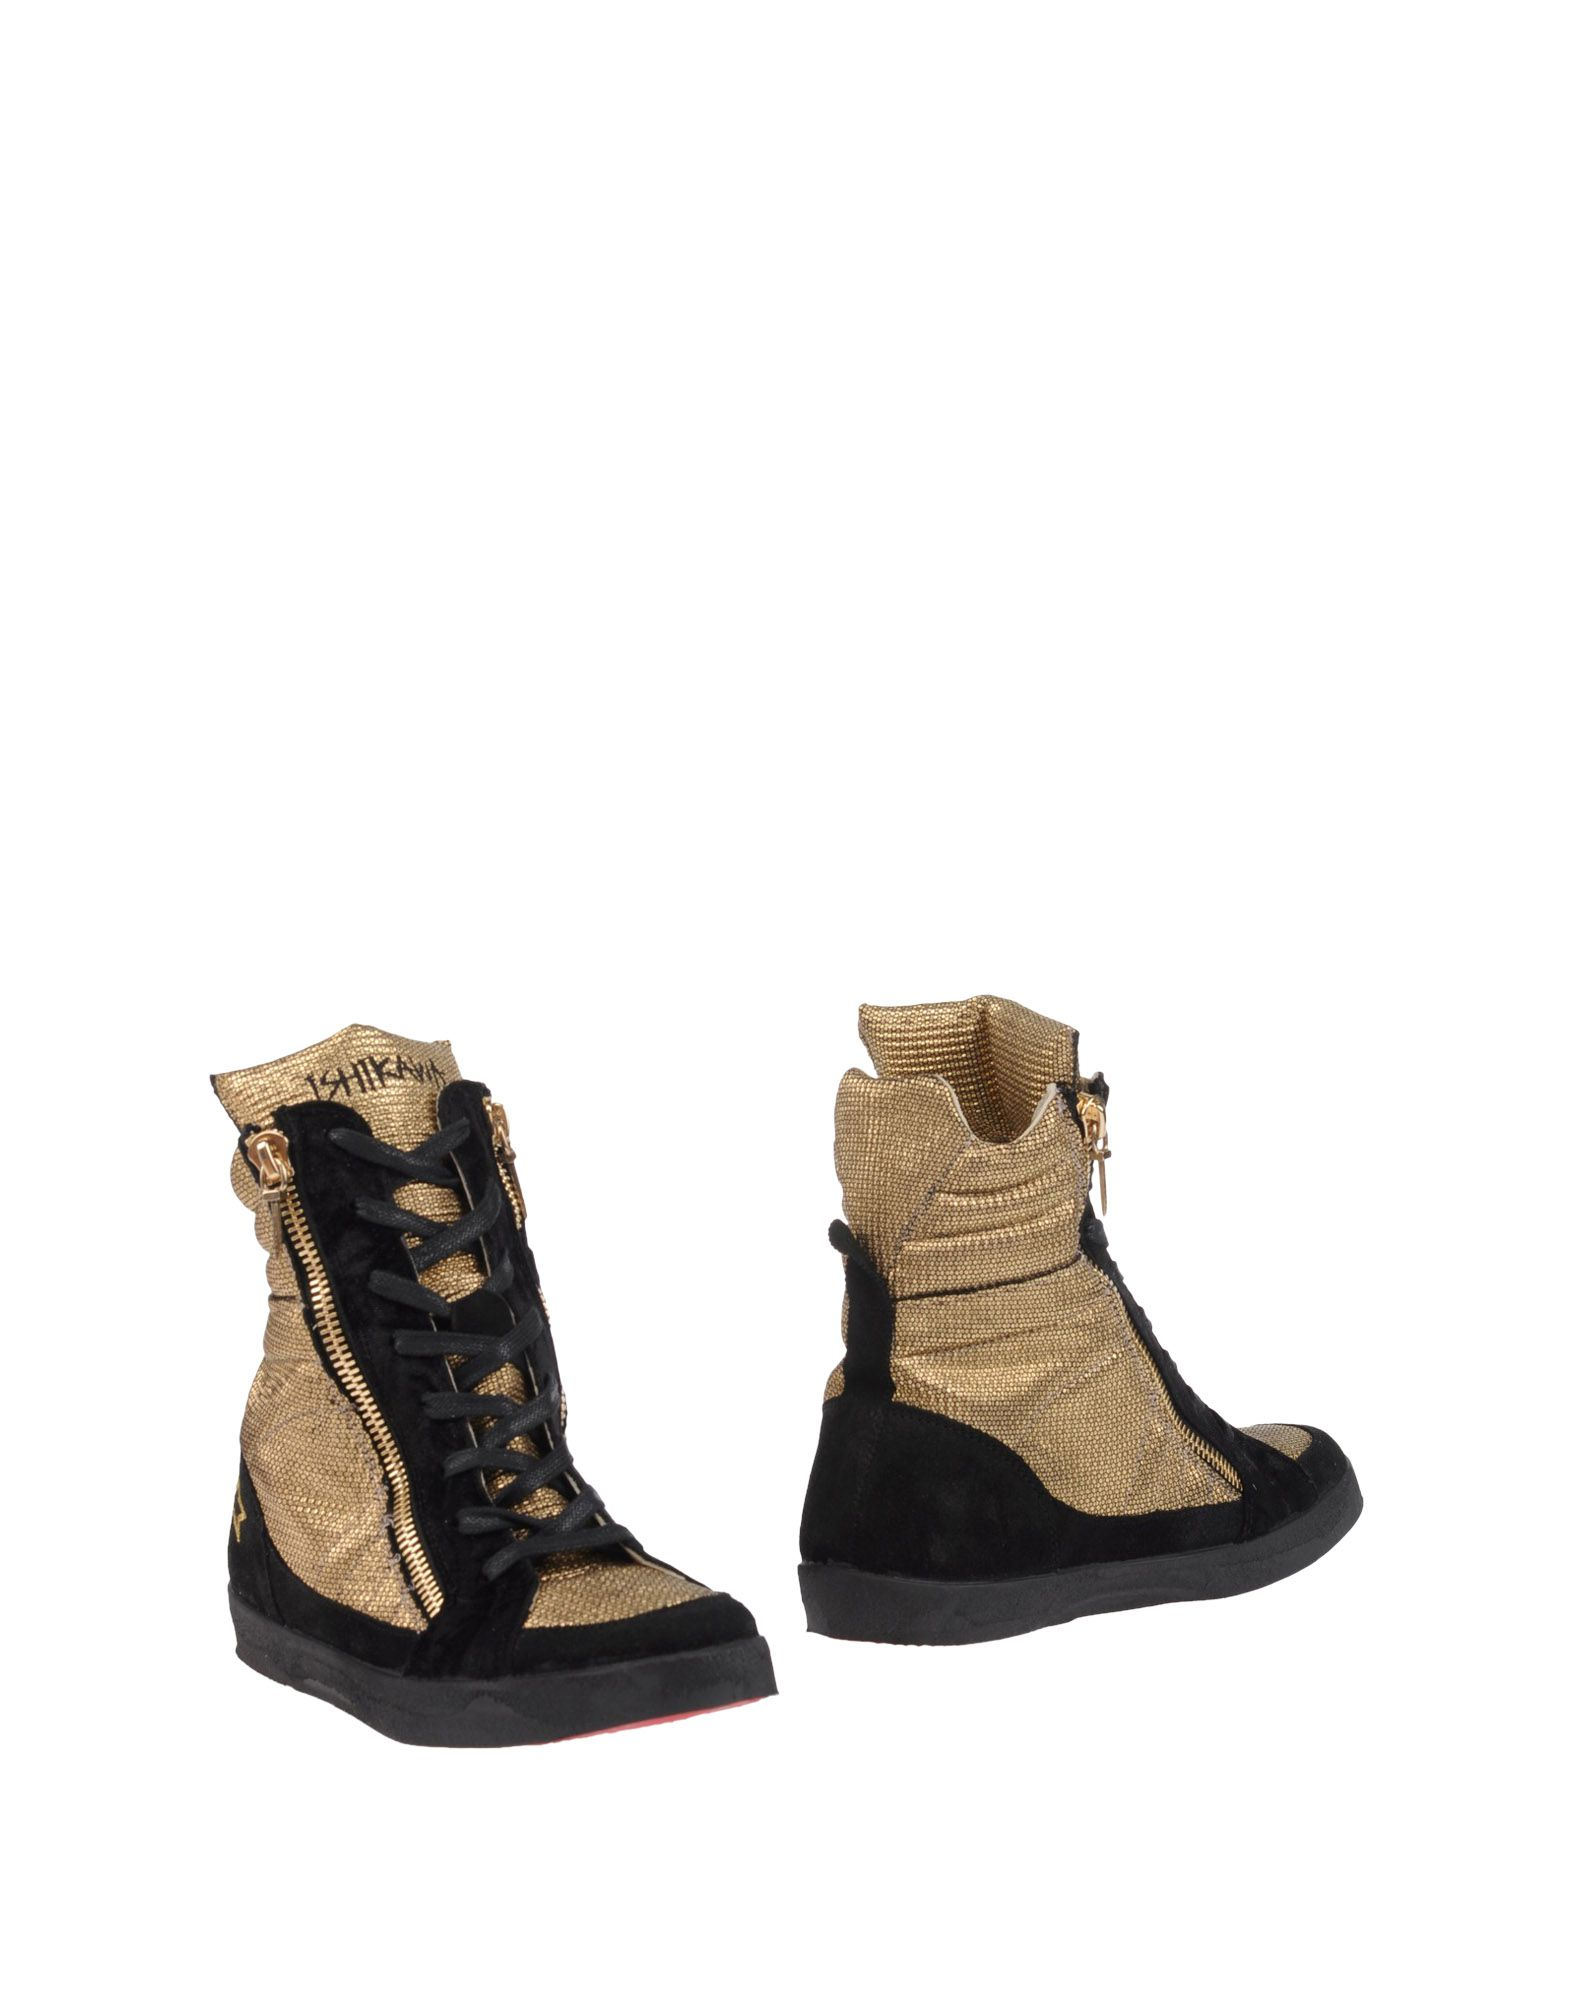 ISHIKAWA Ankle Boot in Gold